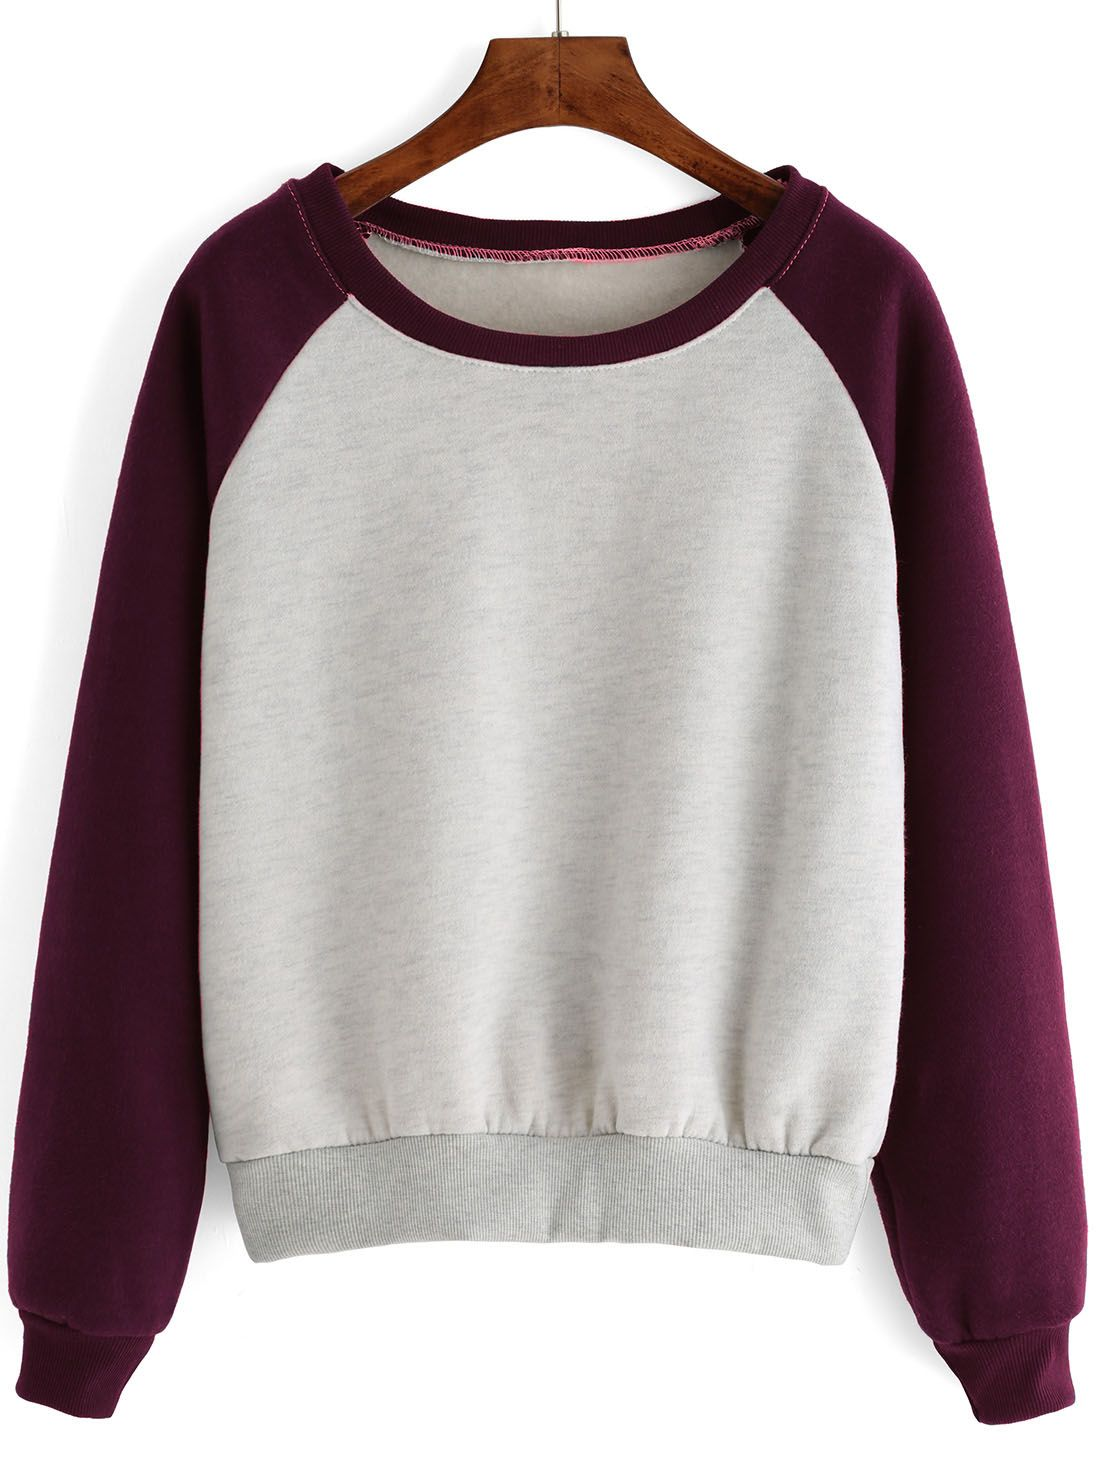 Raglan Sleeve Color-block Thicken Sweatshirt 12.00